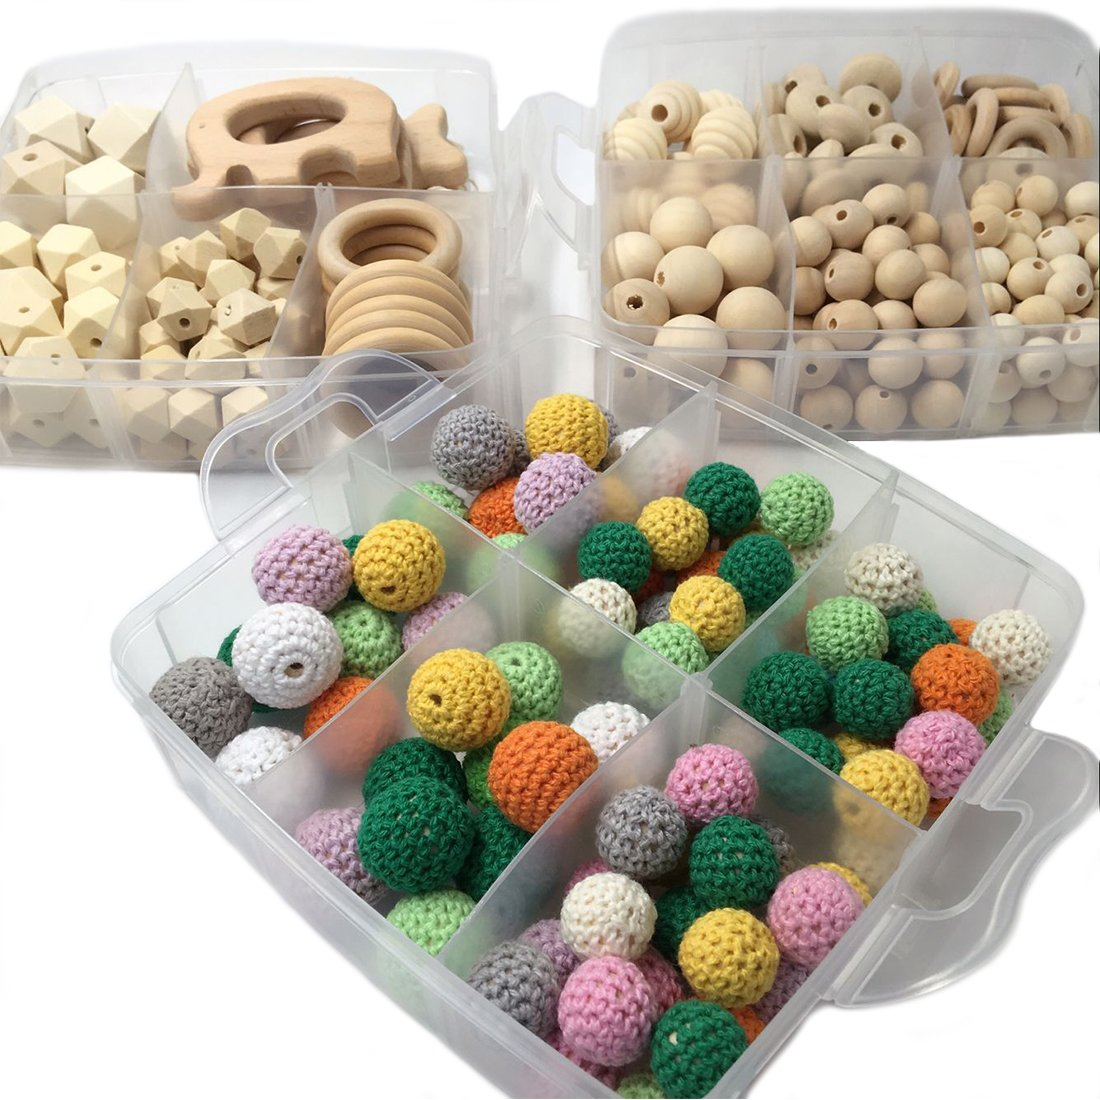 Amyster 2boxes DIY Nursing Jewelry Combination Package Crochet Beads Blending Natural Round Geometry Wooden Beads Wood Ring Creative Freedom (S501+S502)